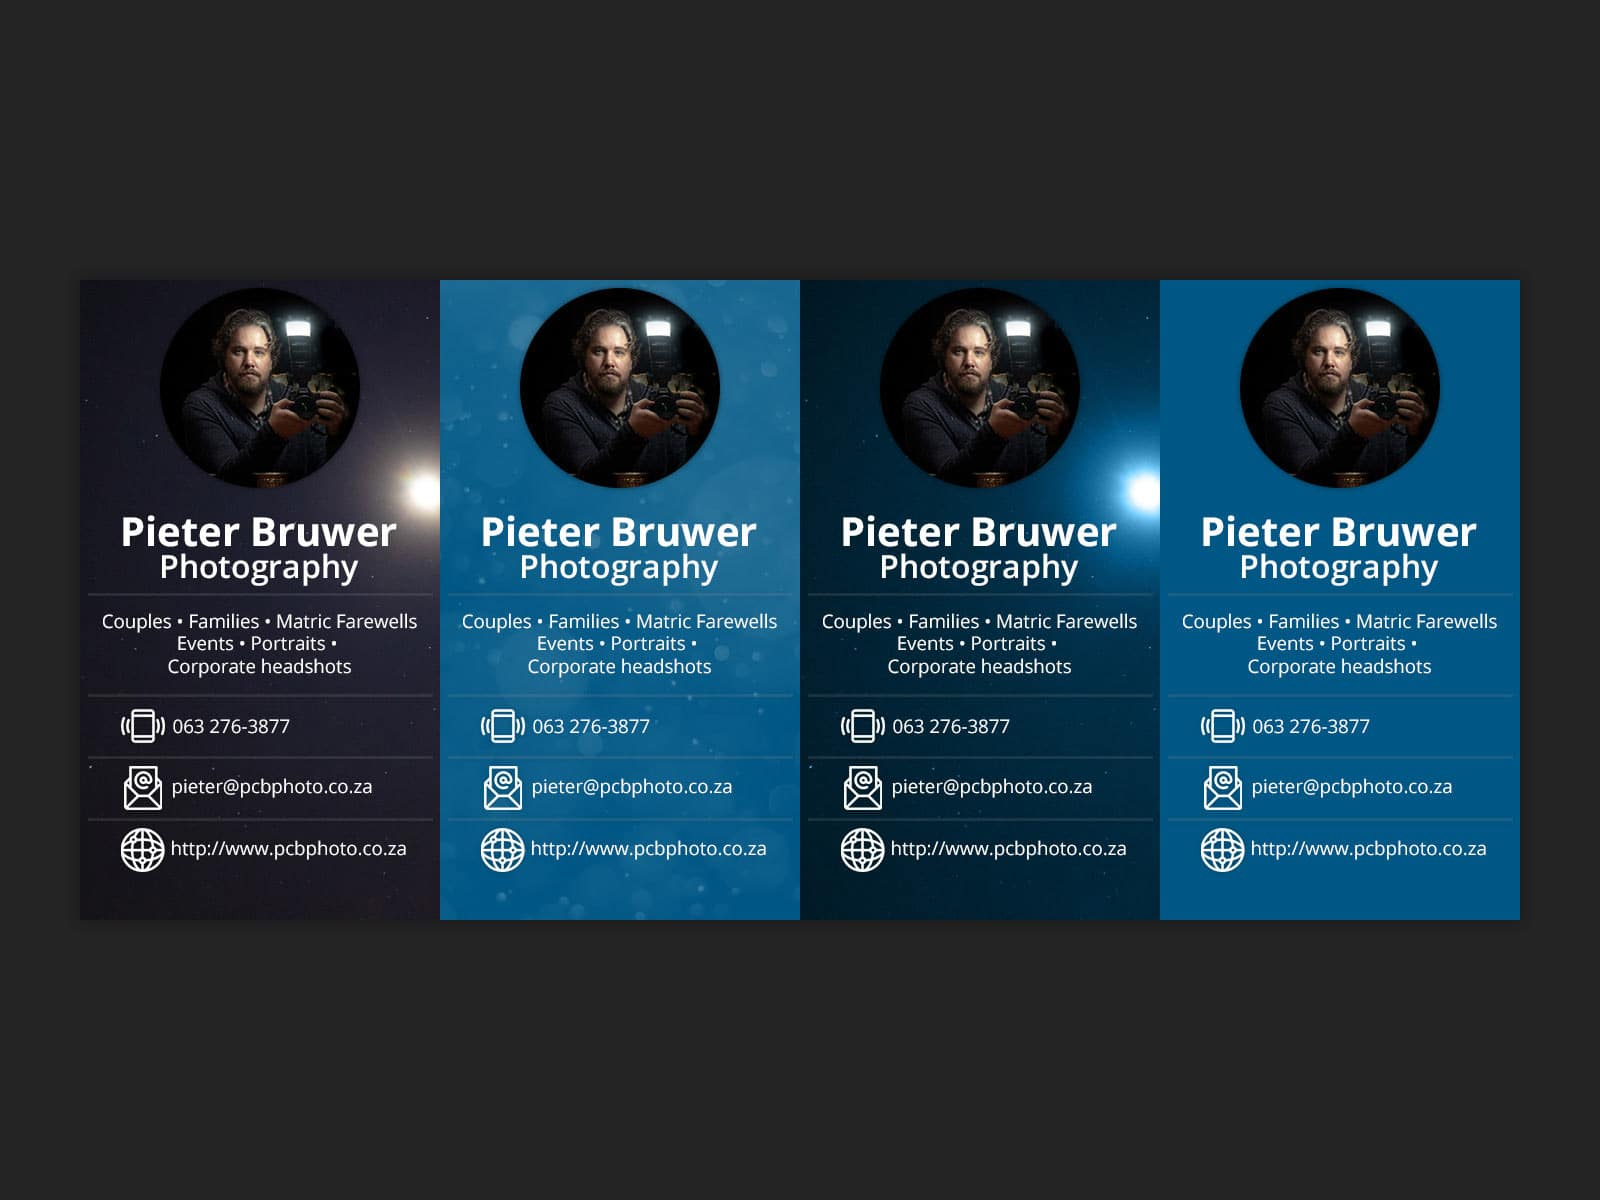 Pieter Bruwer Photography – Digital business cards